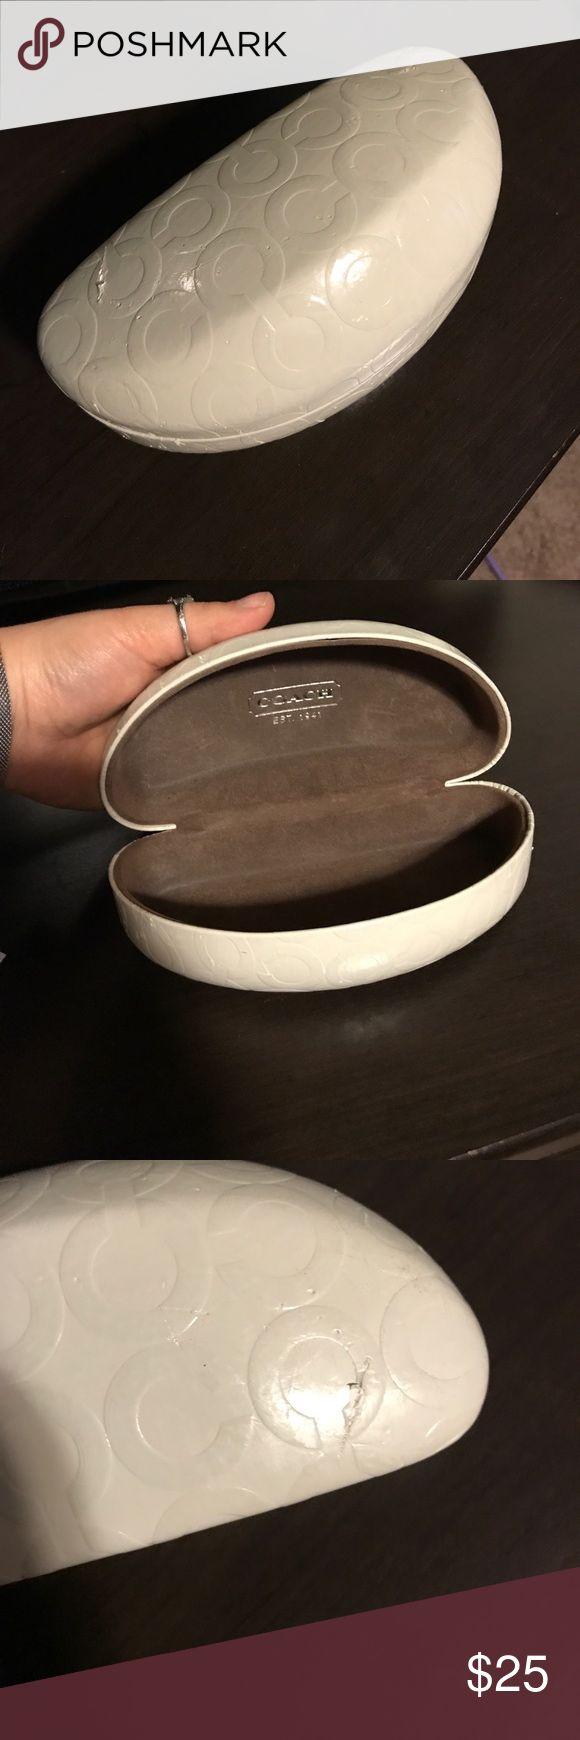 Coach Sunglasses Case White coach sunglasses case. Small mark on the outside (see pics) Coach Accessories Sunglasses